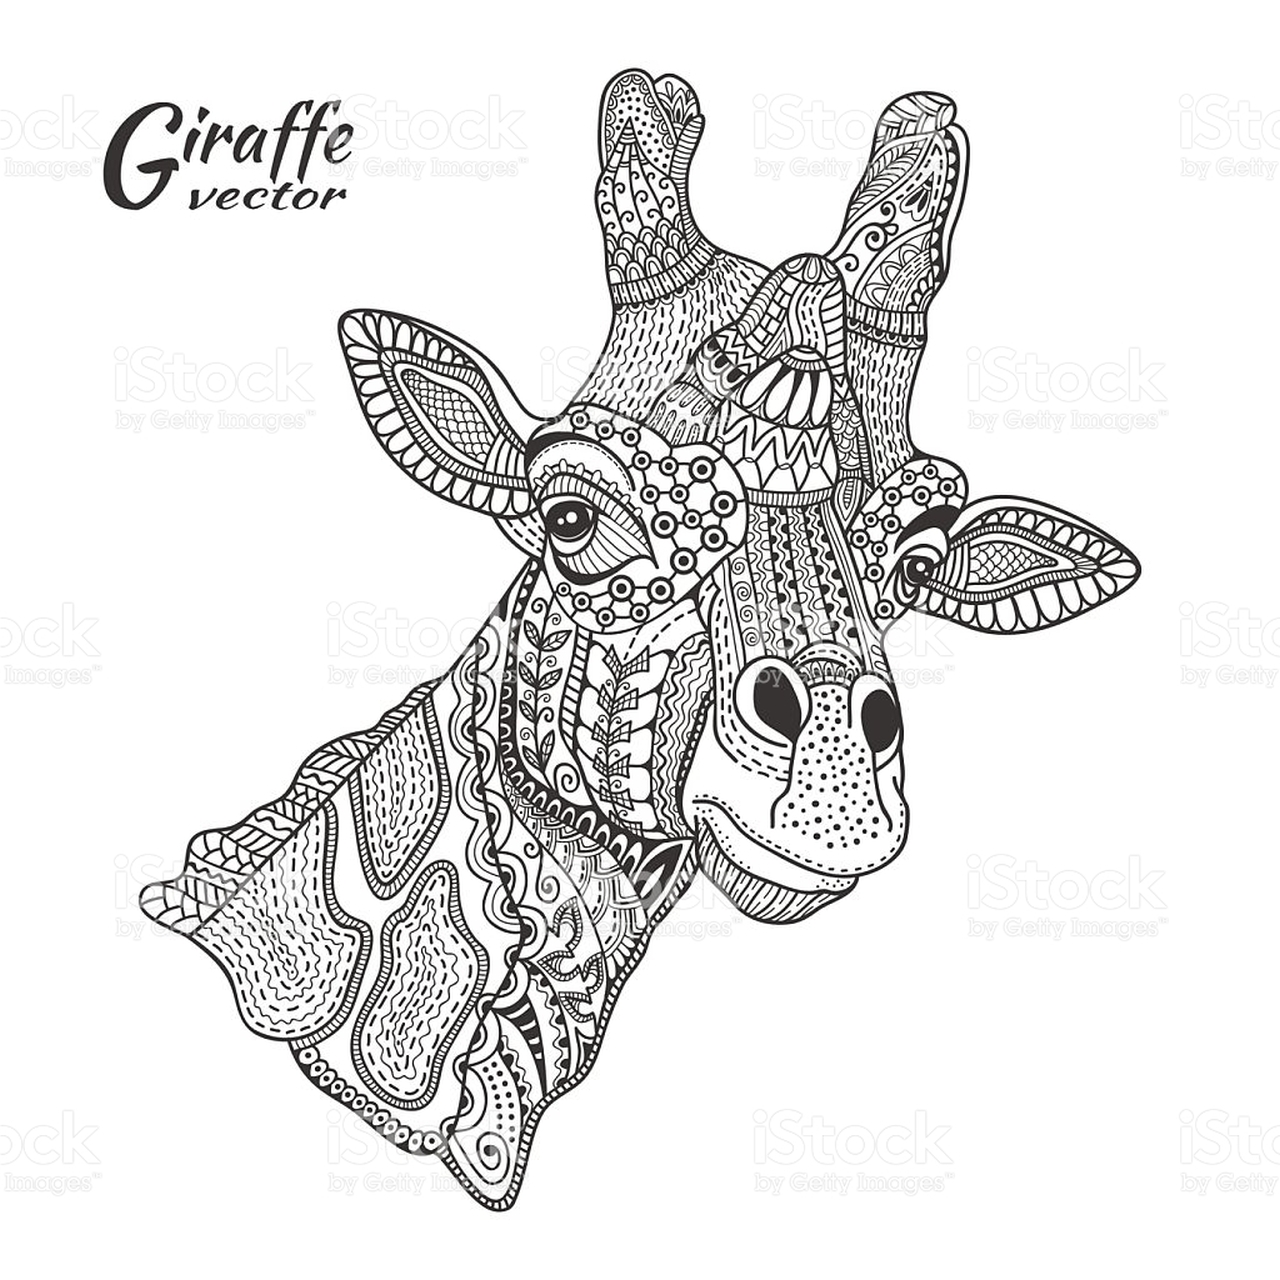 Coloring pages for adults zentangle - Giraffe Coloring Pages For Adults Zentangle Art 88912